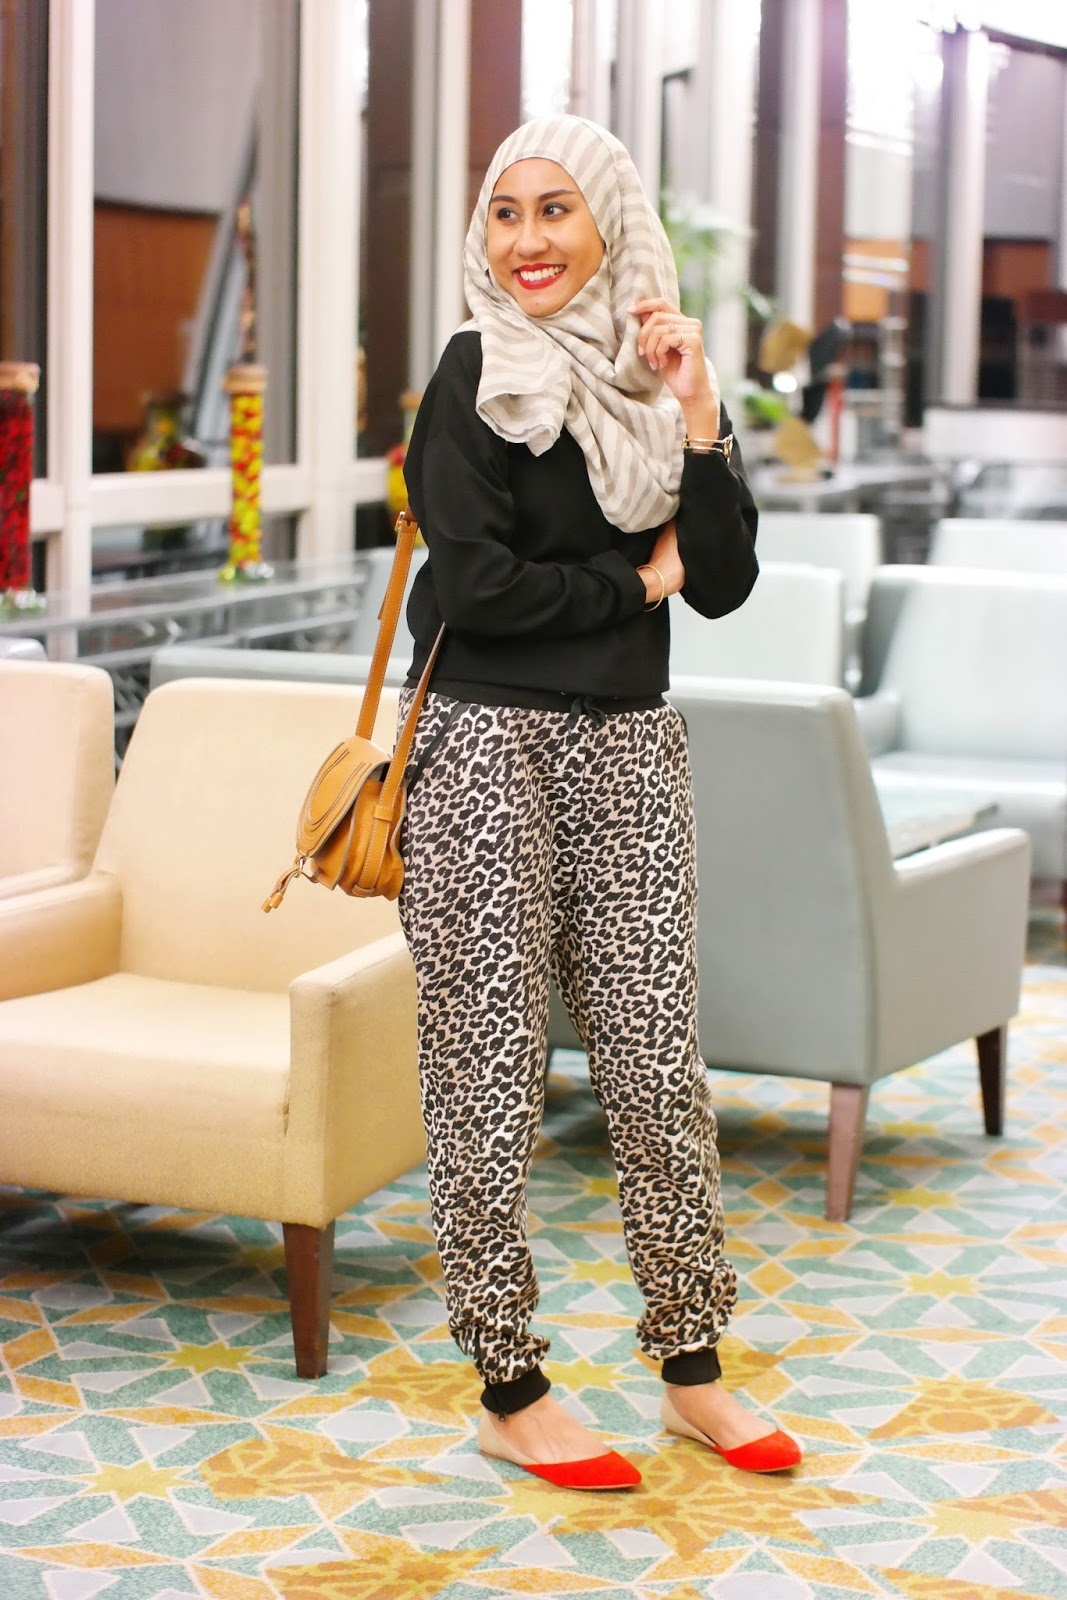 birthday dinner in leopard joggers affordorable